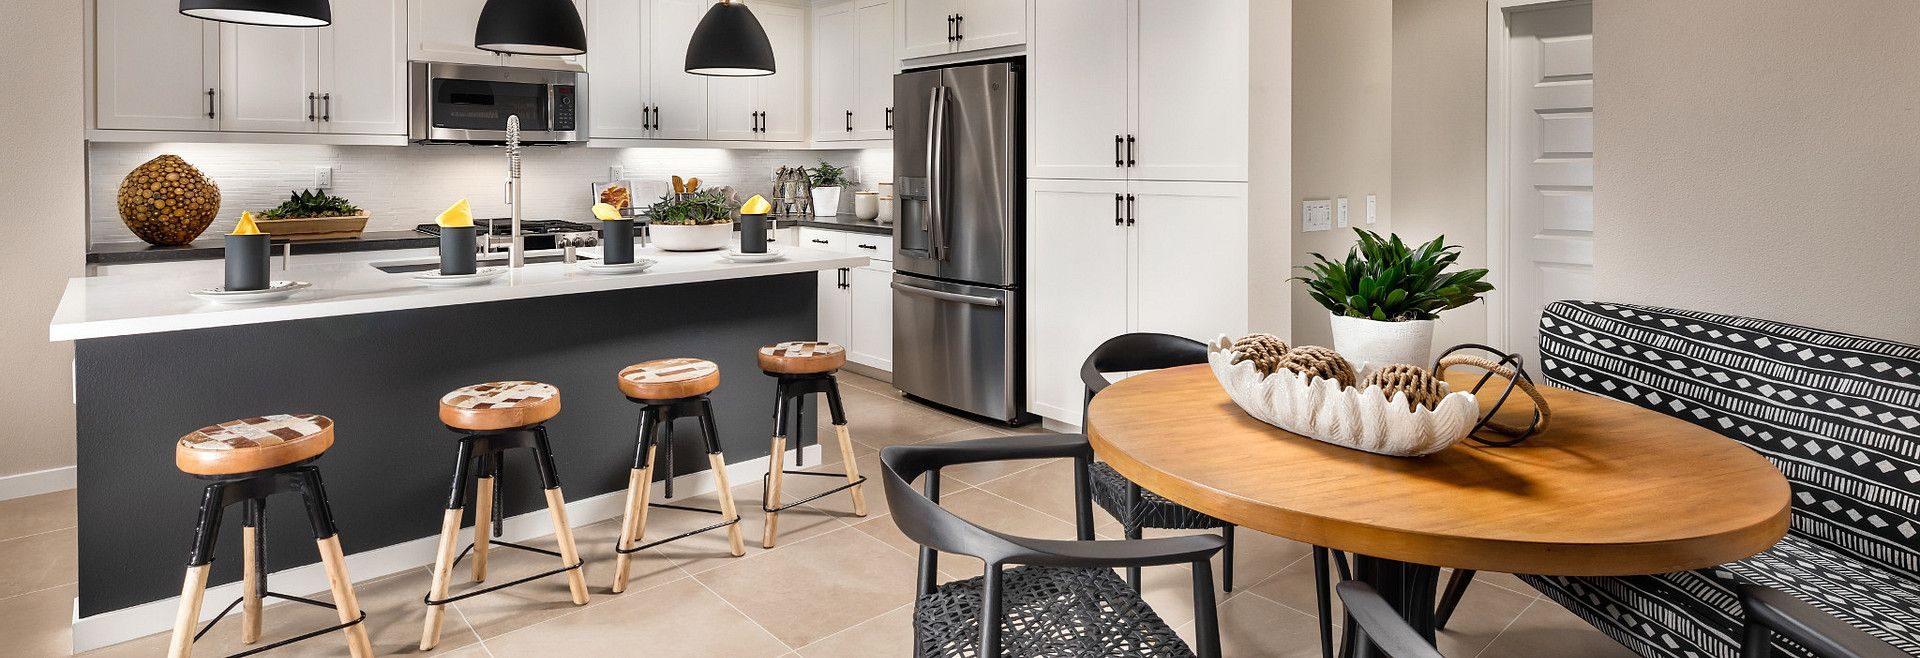 Kitchen featured in the Plan 2 By Shea Homes in San Diego, CA